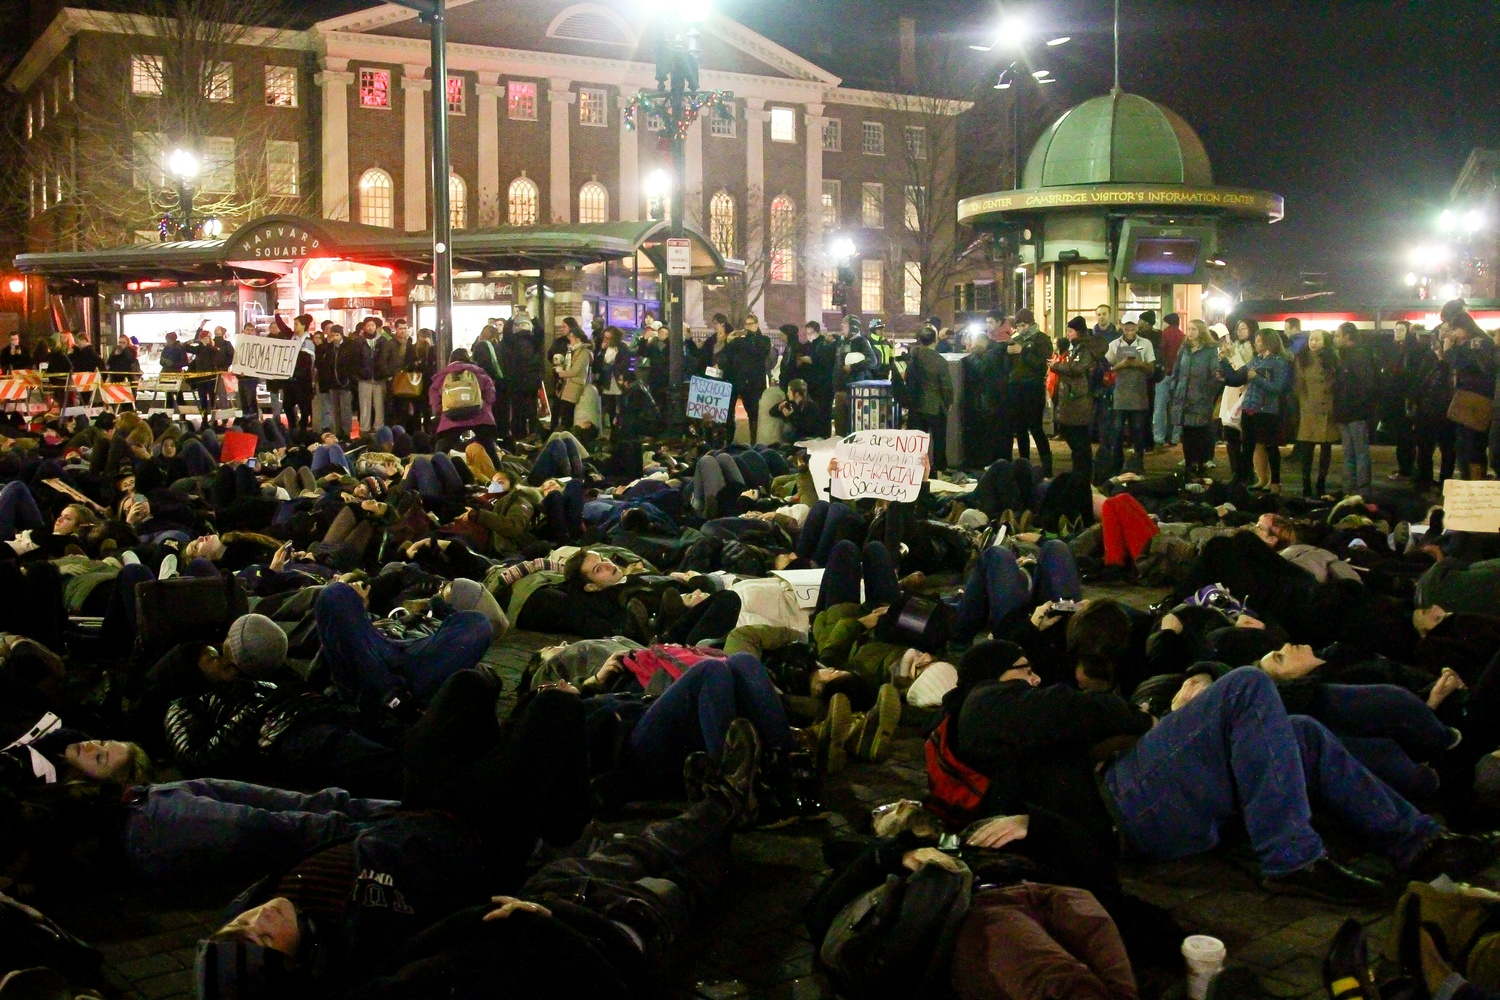 Protestors at the die-in in Harvard Square on Friday evening.